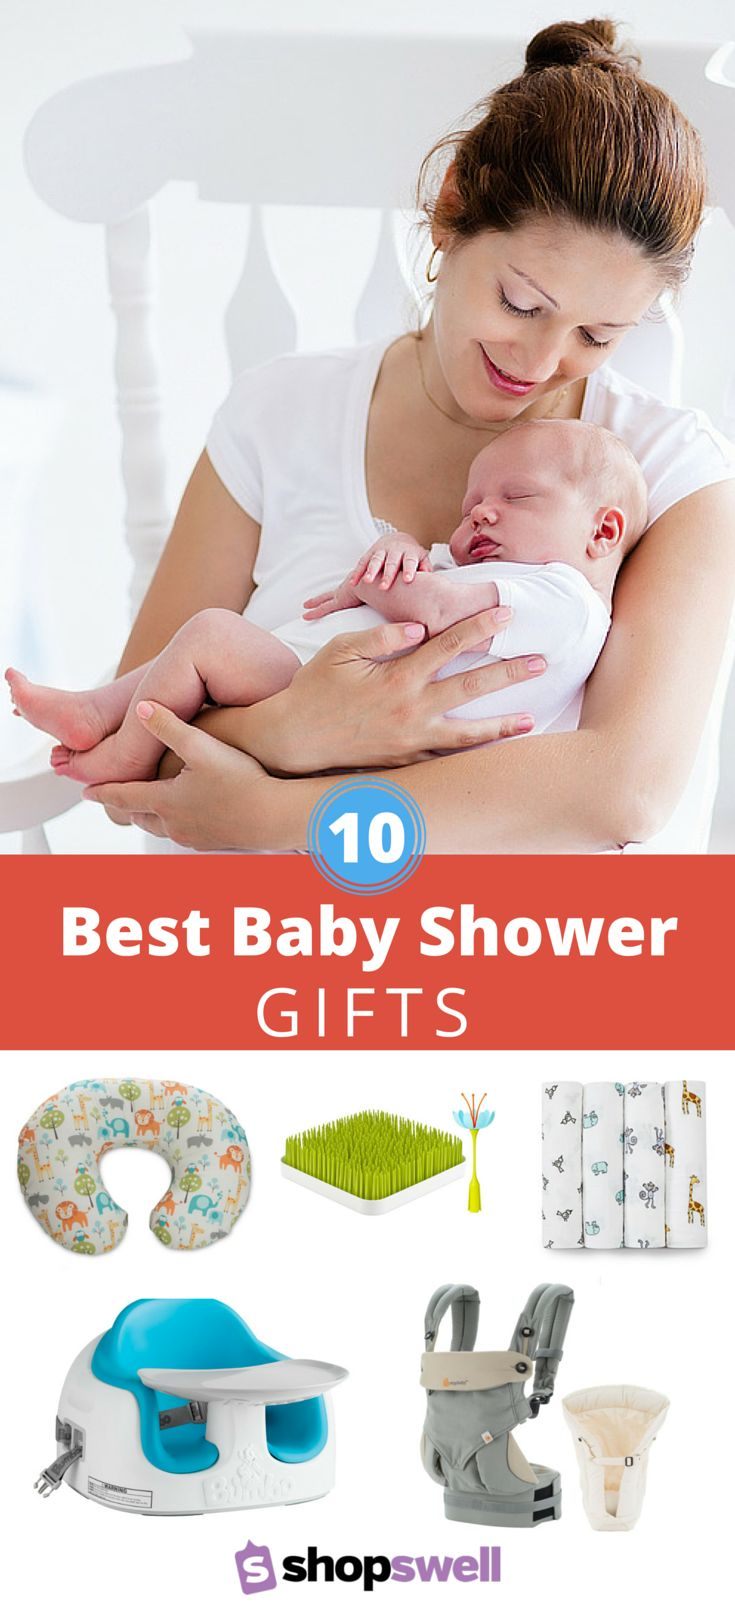 These Are 10 Of The Top Baby Shower Gifts New Moms Have Loved To Receive And